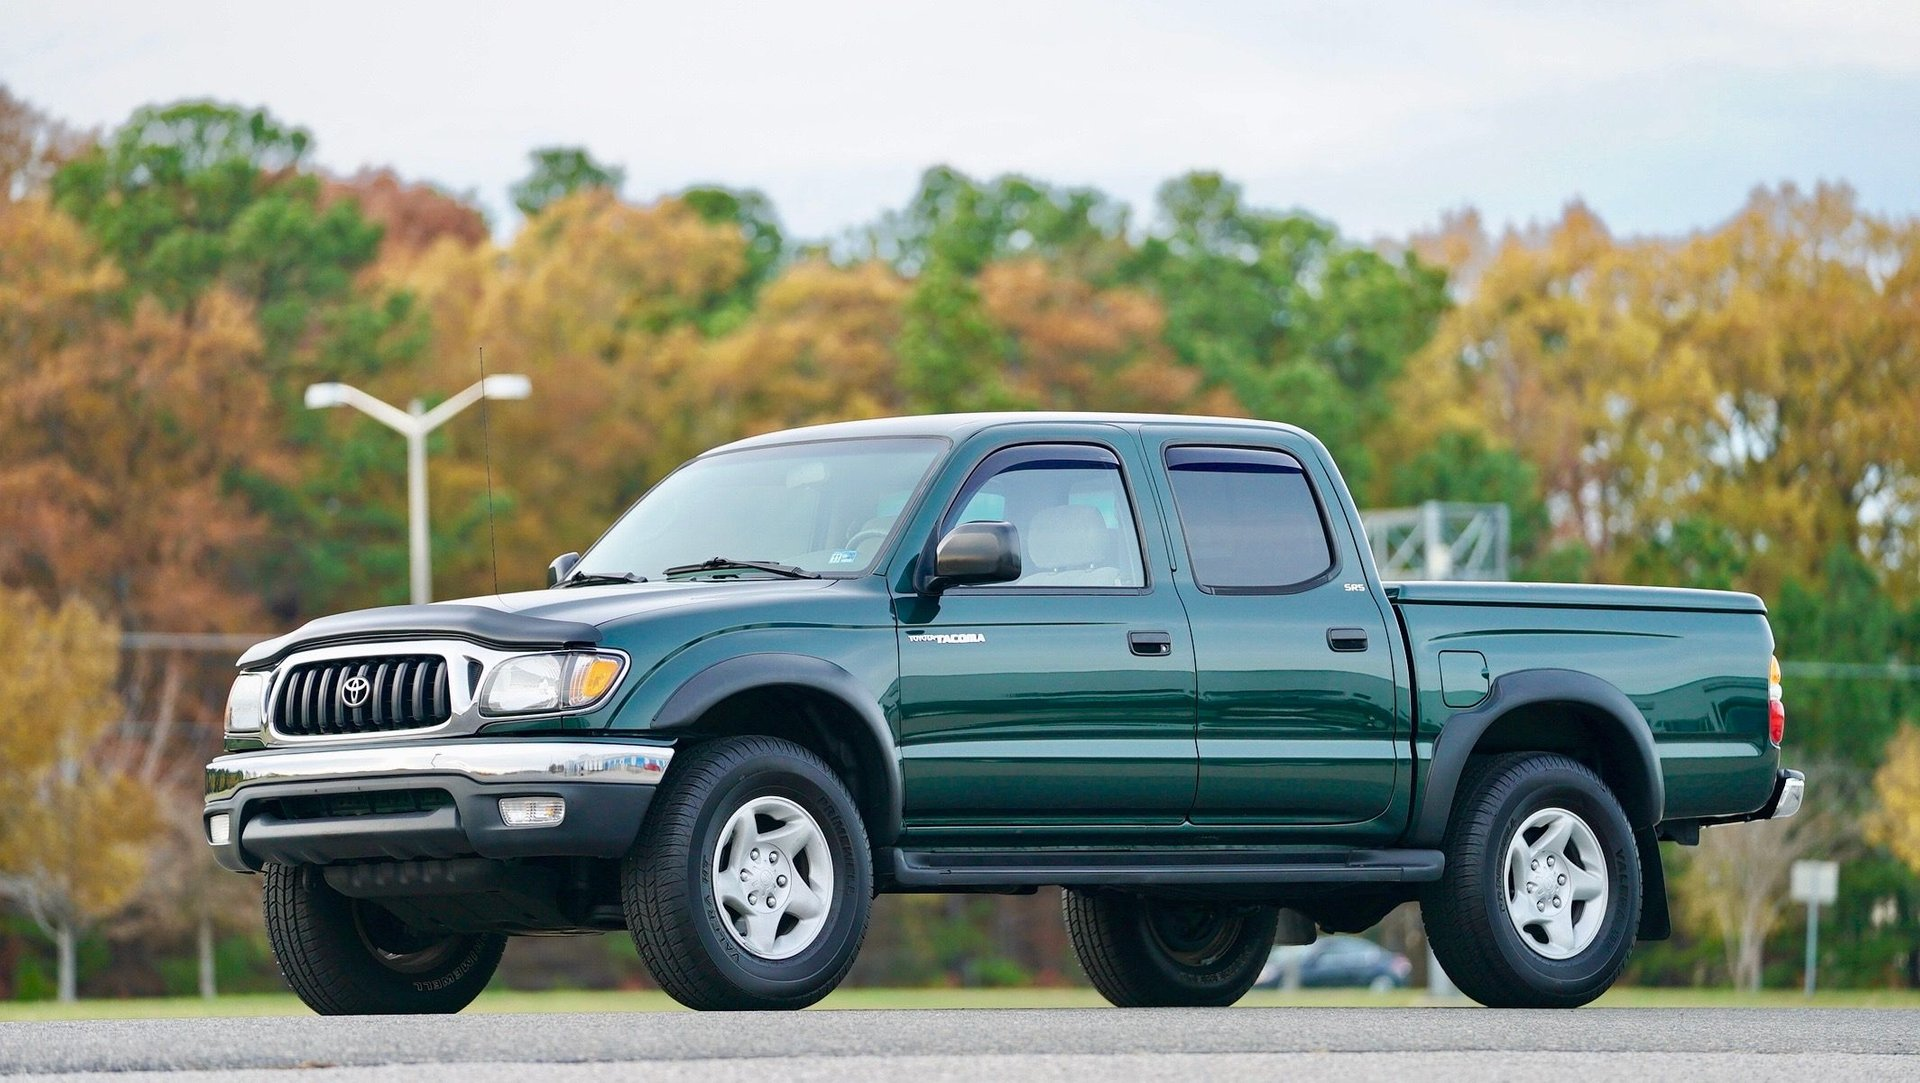 2002 toyota tacoma doublecab prerunner sr5